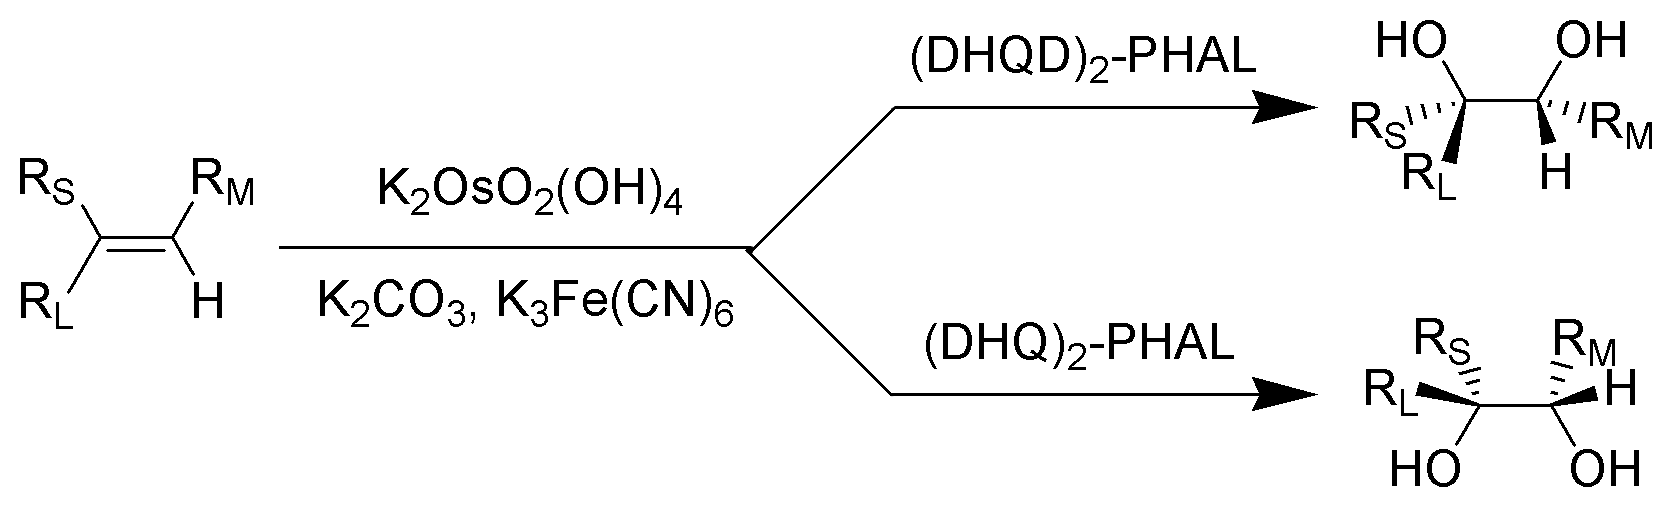 The Sharpless dihydroxylation: RL = Largest substituent; RM = Medium-sized substituent; RS = Smallest substituent